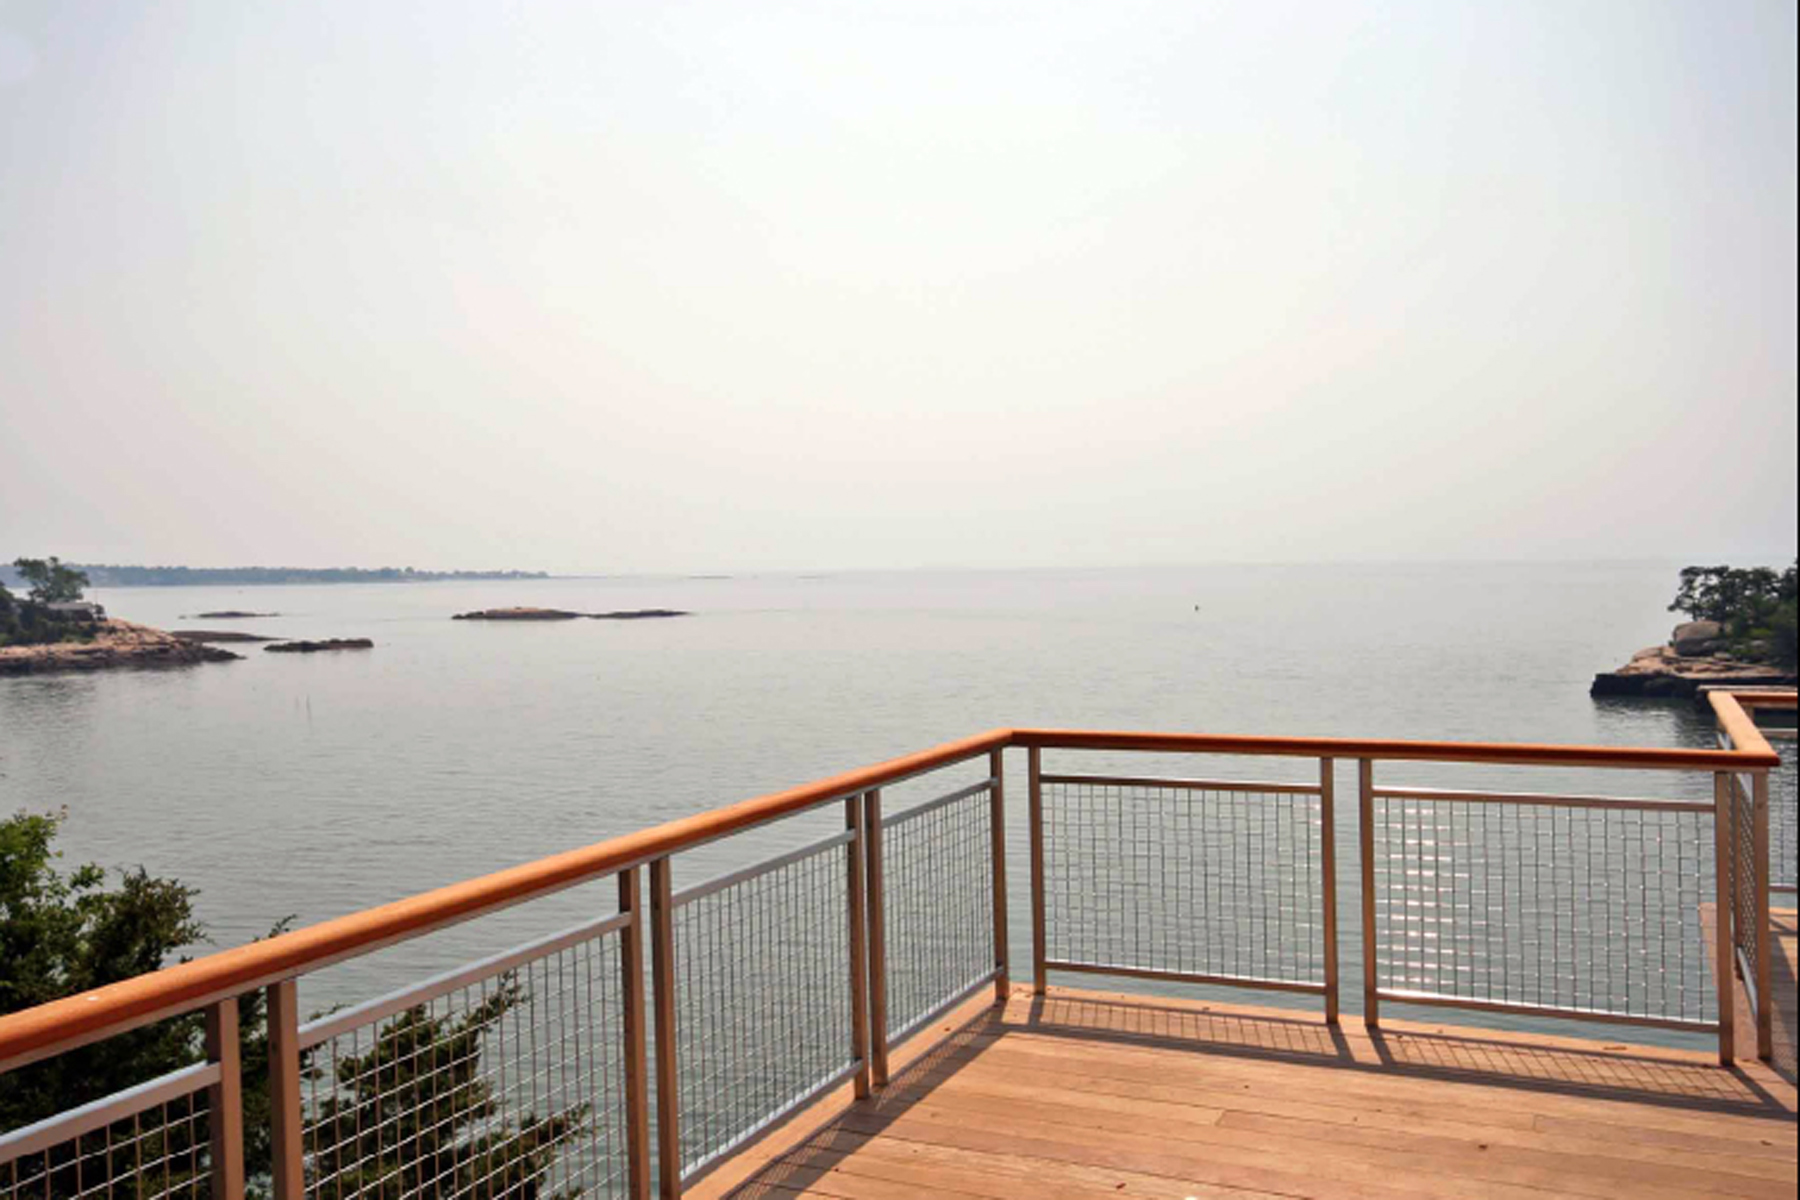 The elegance of the L-62 woven wire mesh does not take away from nature's beauty on this deck.